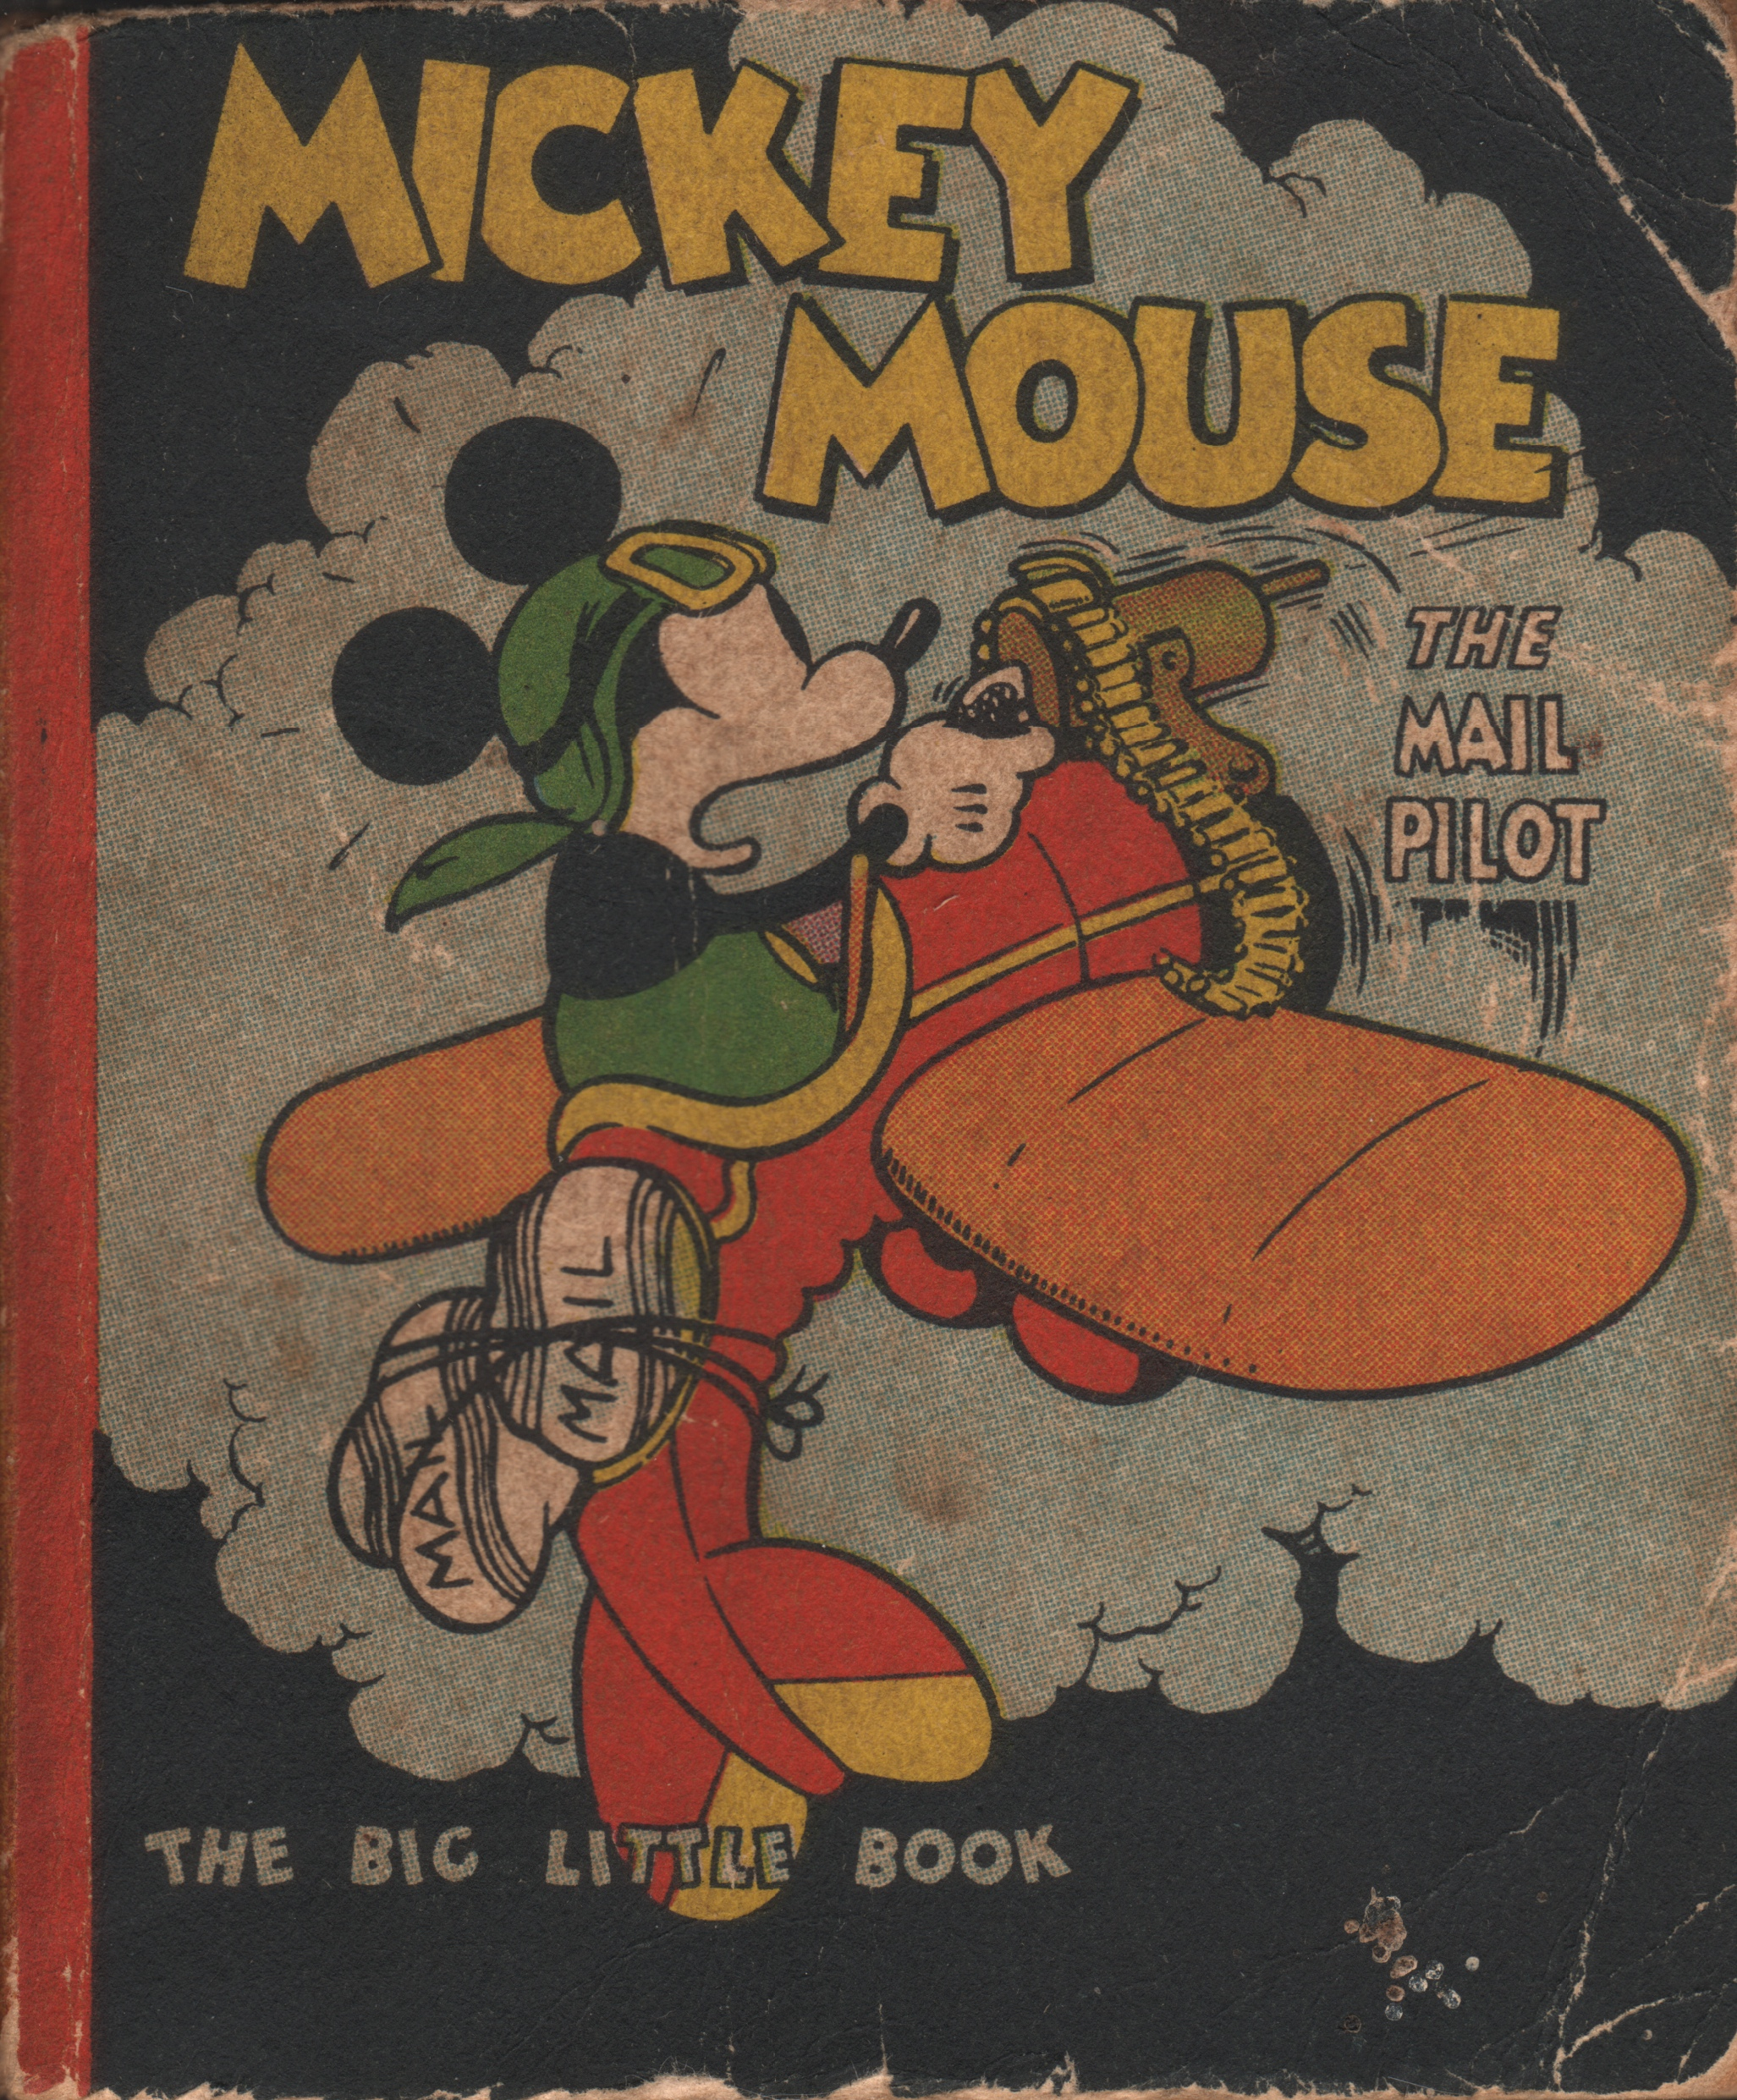 Mickey Mouse The Mail Pilot - The Big Little Book (1933)